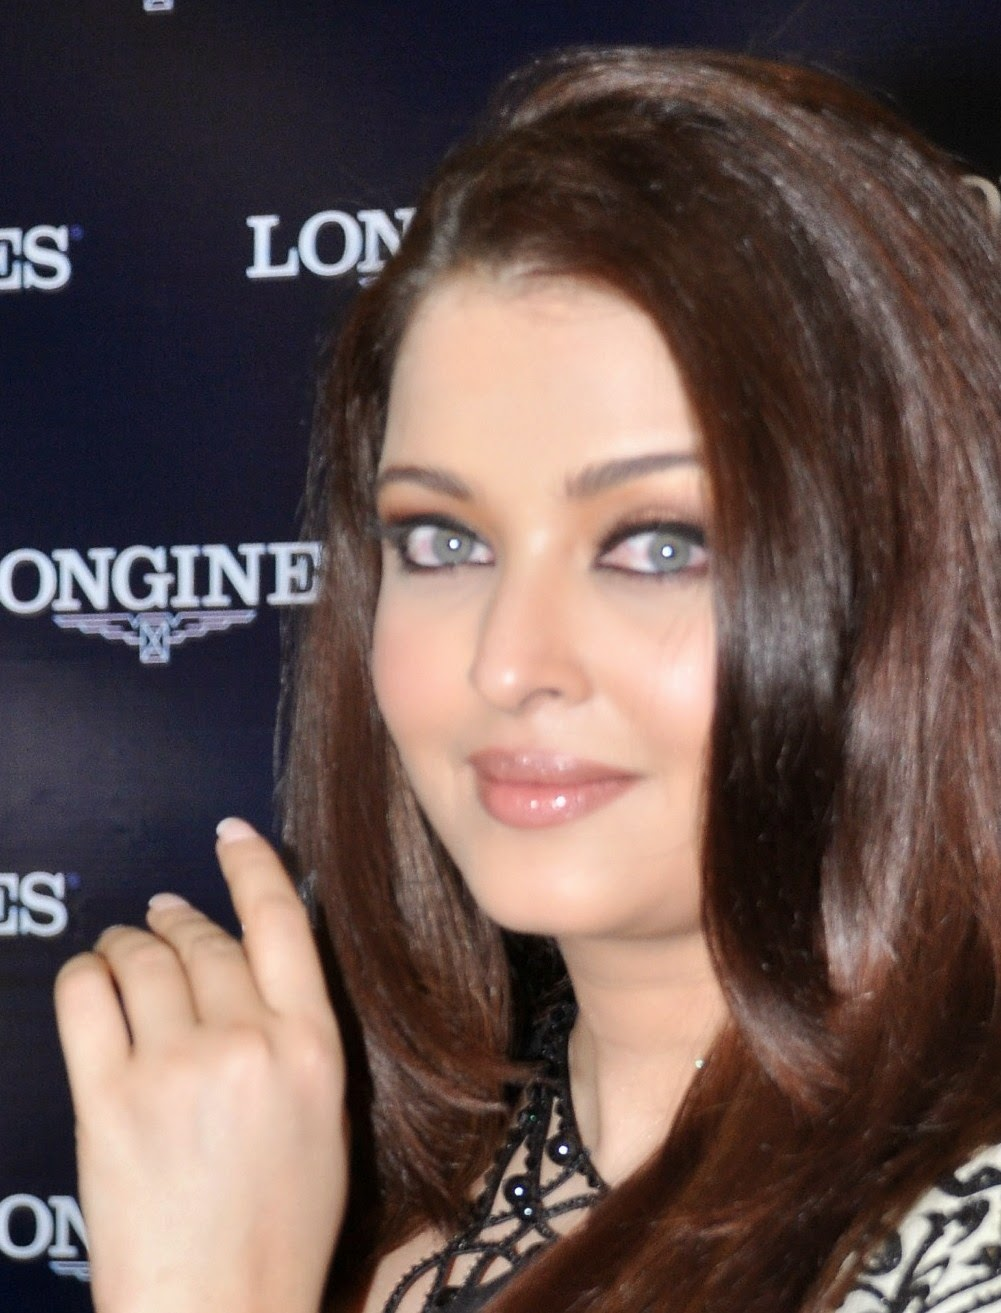 High Quality Bollywood Celebrity Pictures Aishwarya Rai -5997